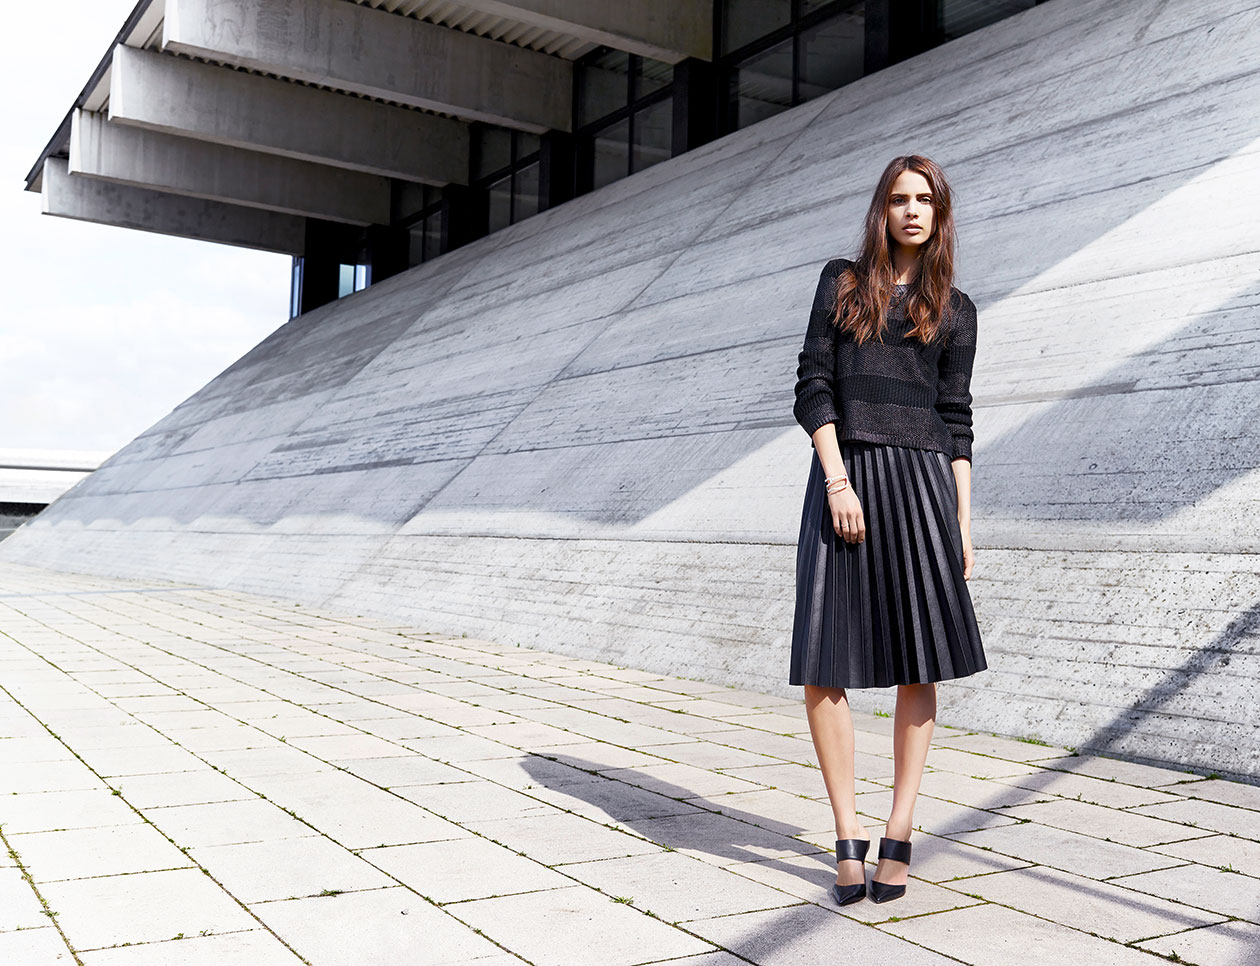 BLACKY_DRESS_CAMPAIGN_ss2015_photographed_by_Mika_Ceron_010.jpg